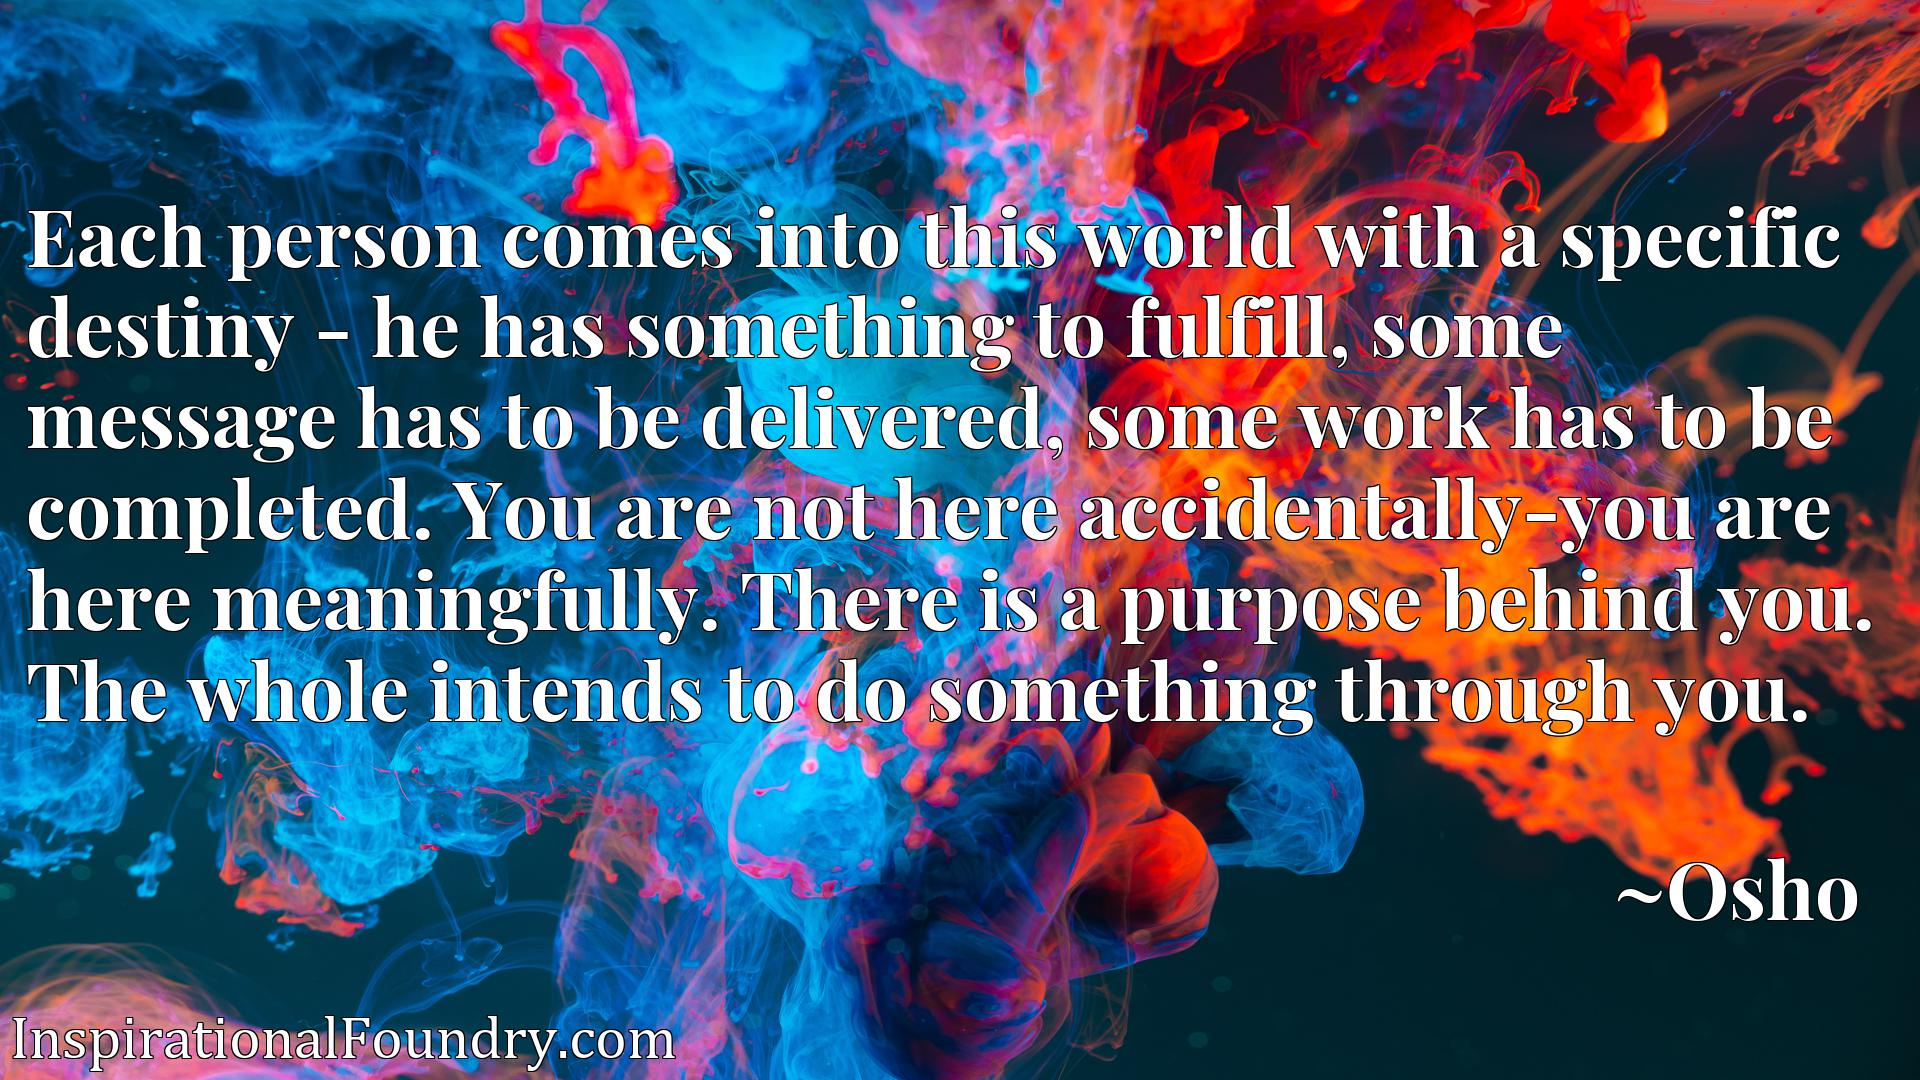 Each person comes into this world with a specific destiny - he has something to fulfill, some message has to be delivered, some work has to be completed. You are not here accidentally-you are here meaningfully. There is a purpose behind you. The whole intends to do something through you.